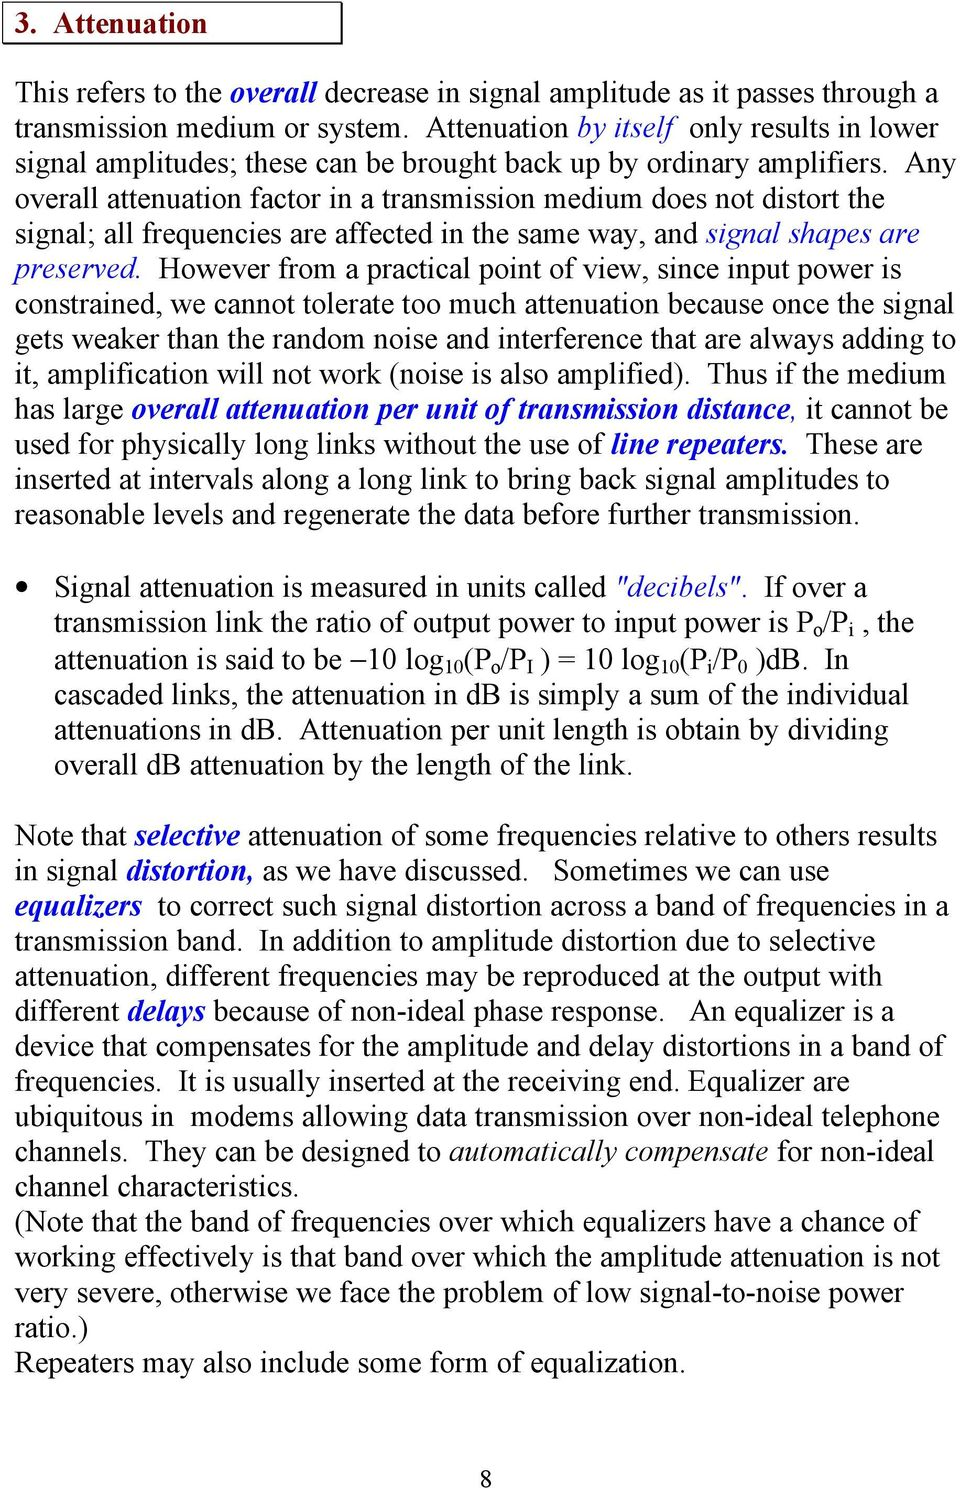 Any overall attenuation factor in a transmission medium does not distort the signal; all frequencies are affected in the same way, and signal shapes are preserved.